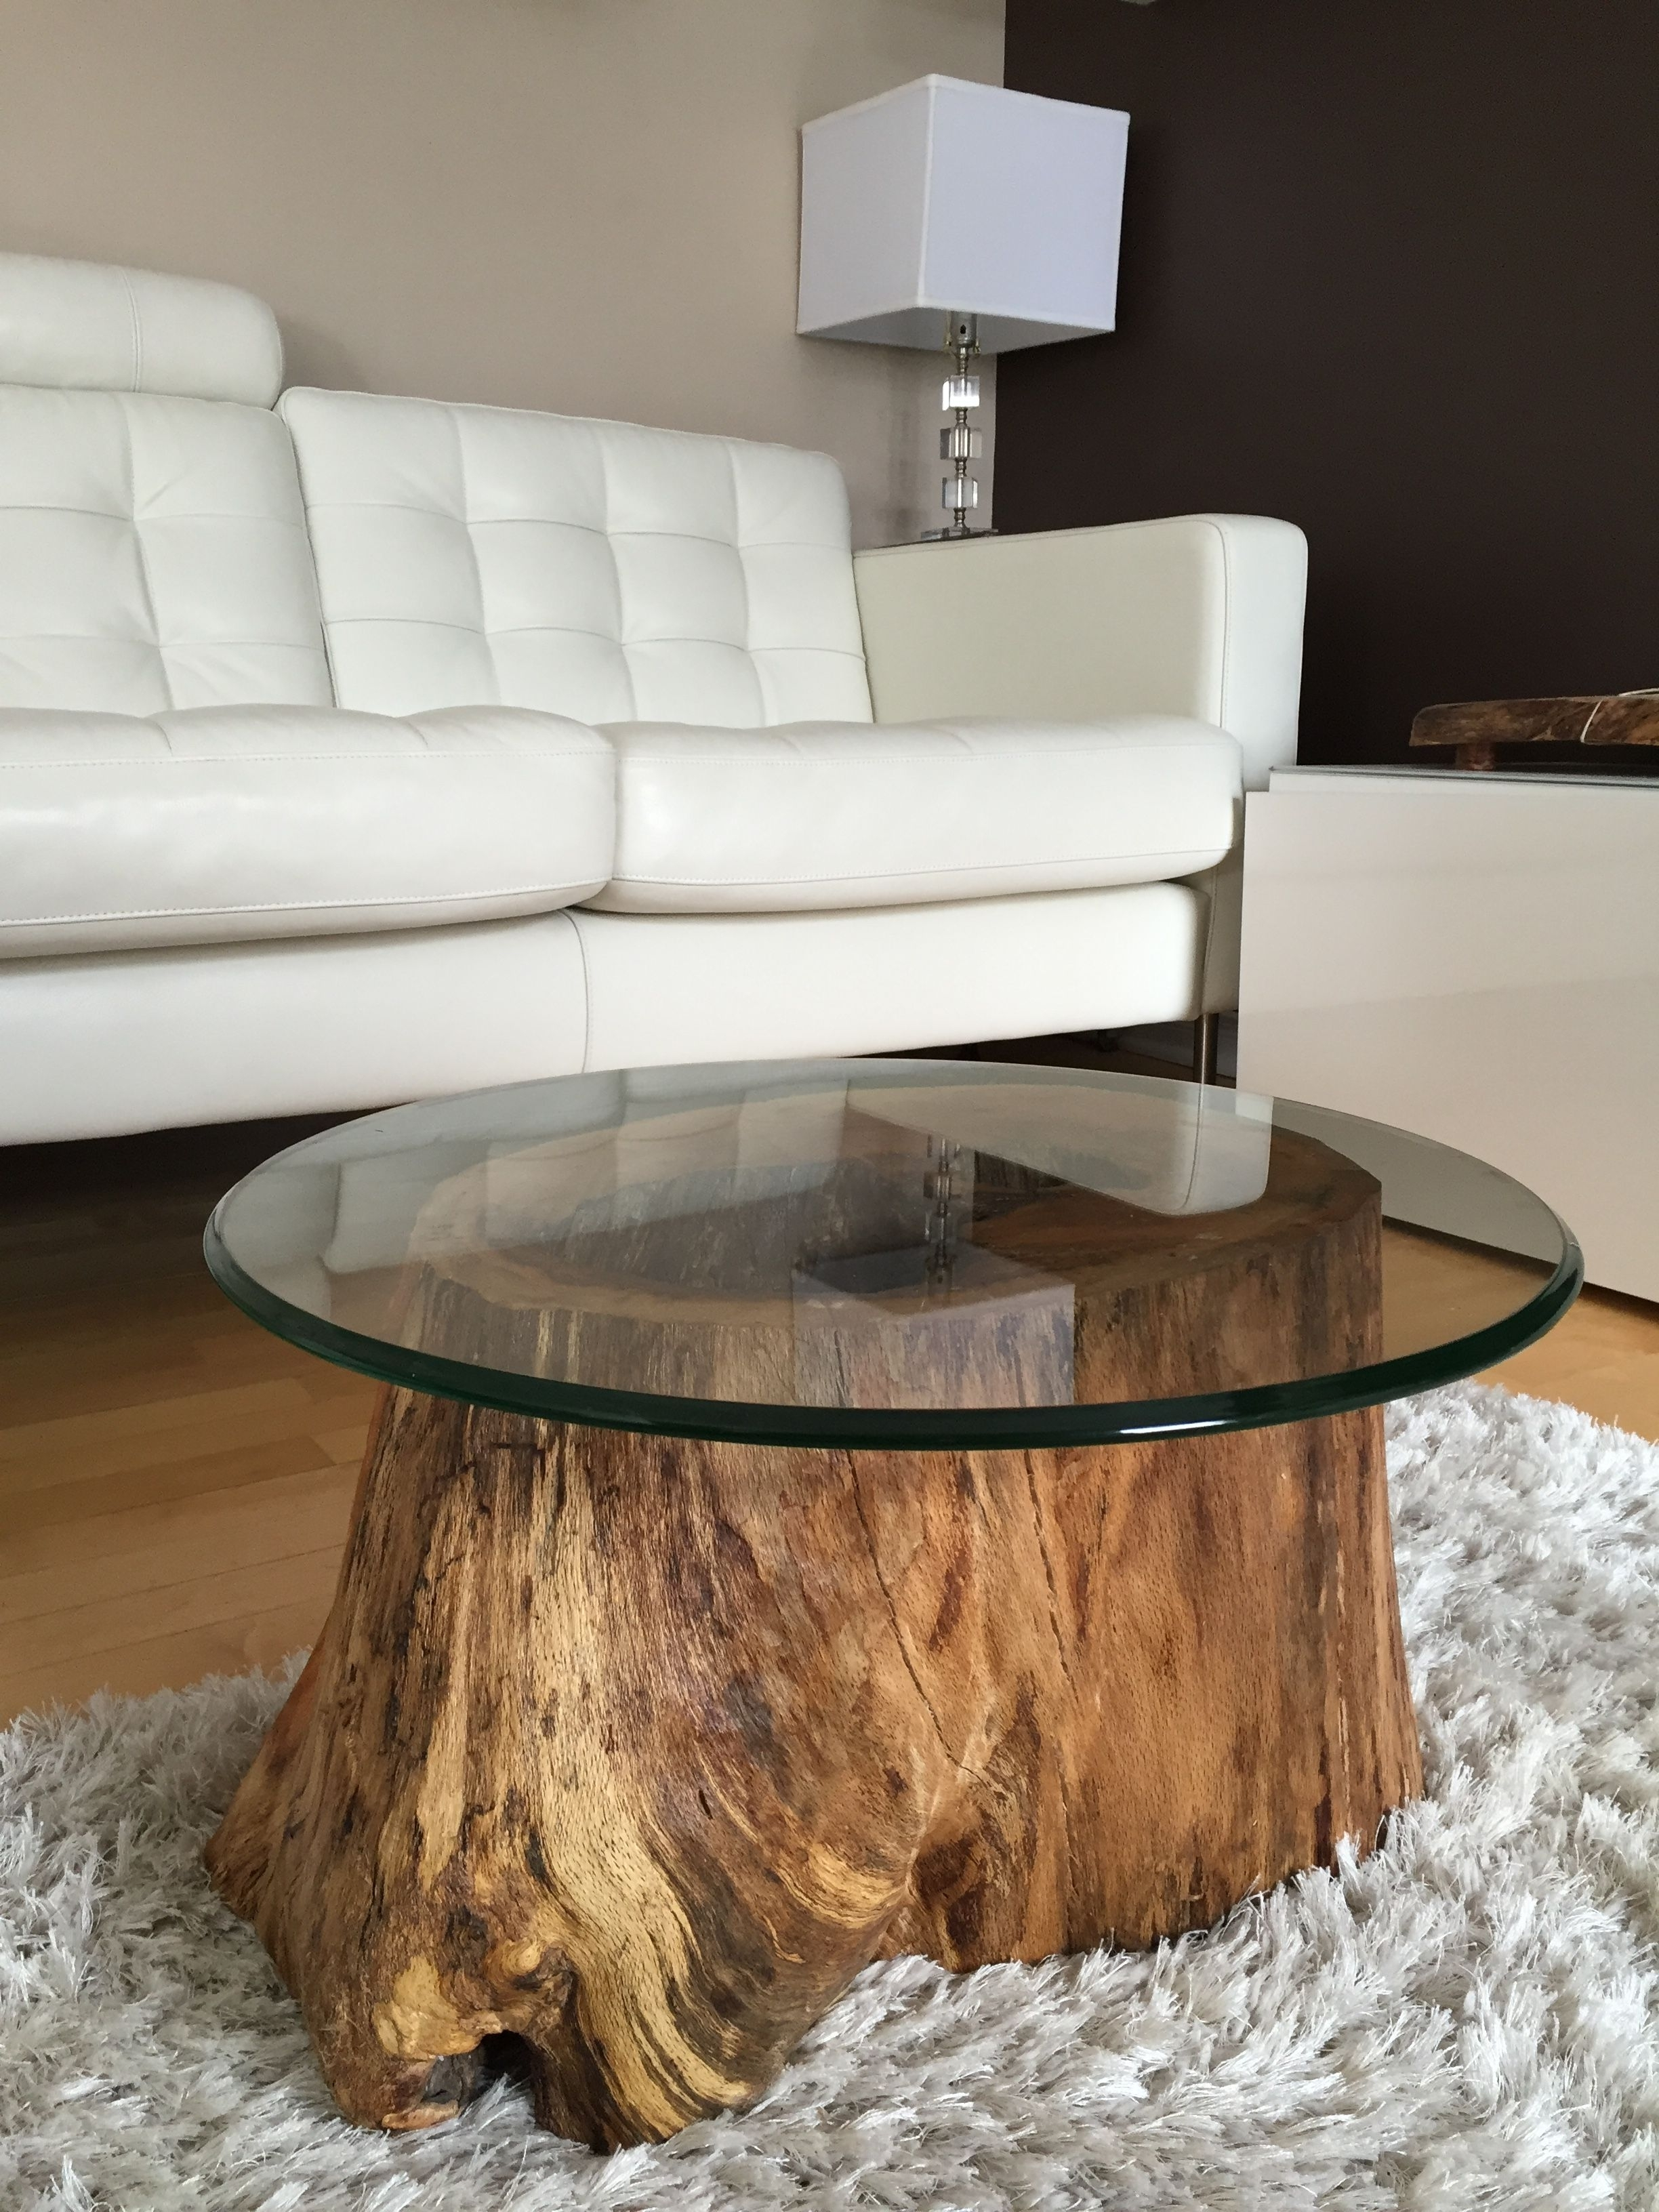 Furniture, Rustic Pertaining To Most Recently Released Recycled Pine Stone Side Tables (View 9 of 20)